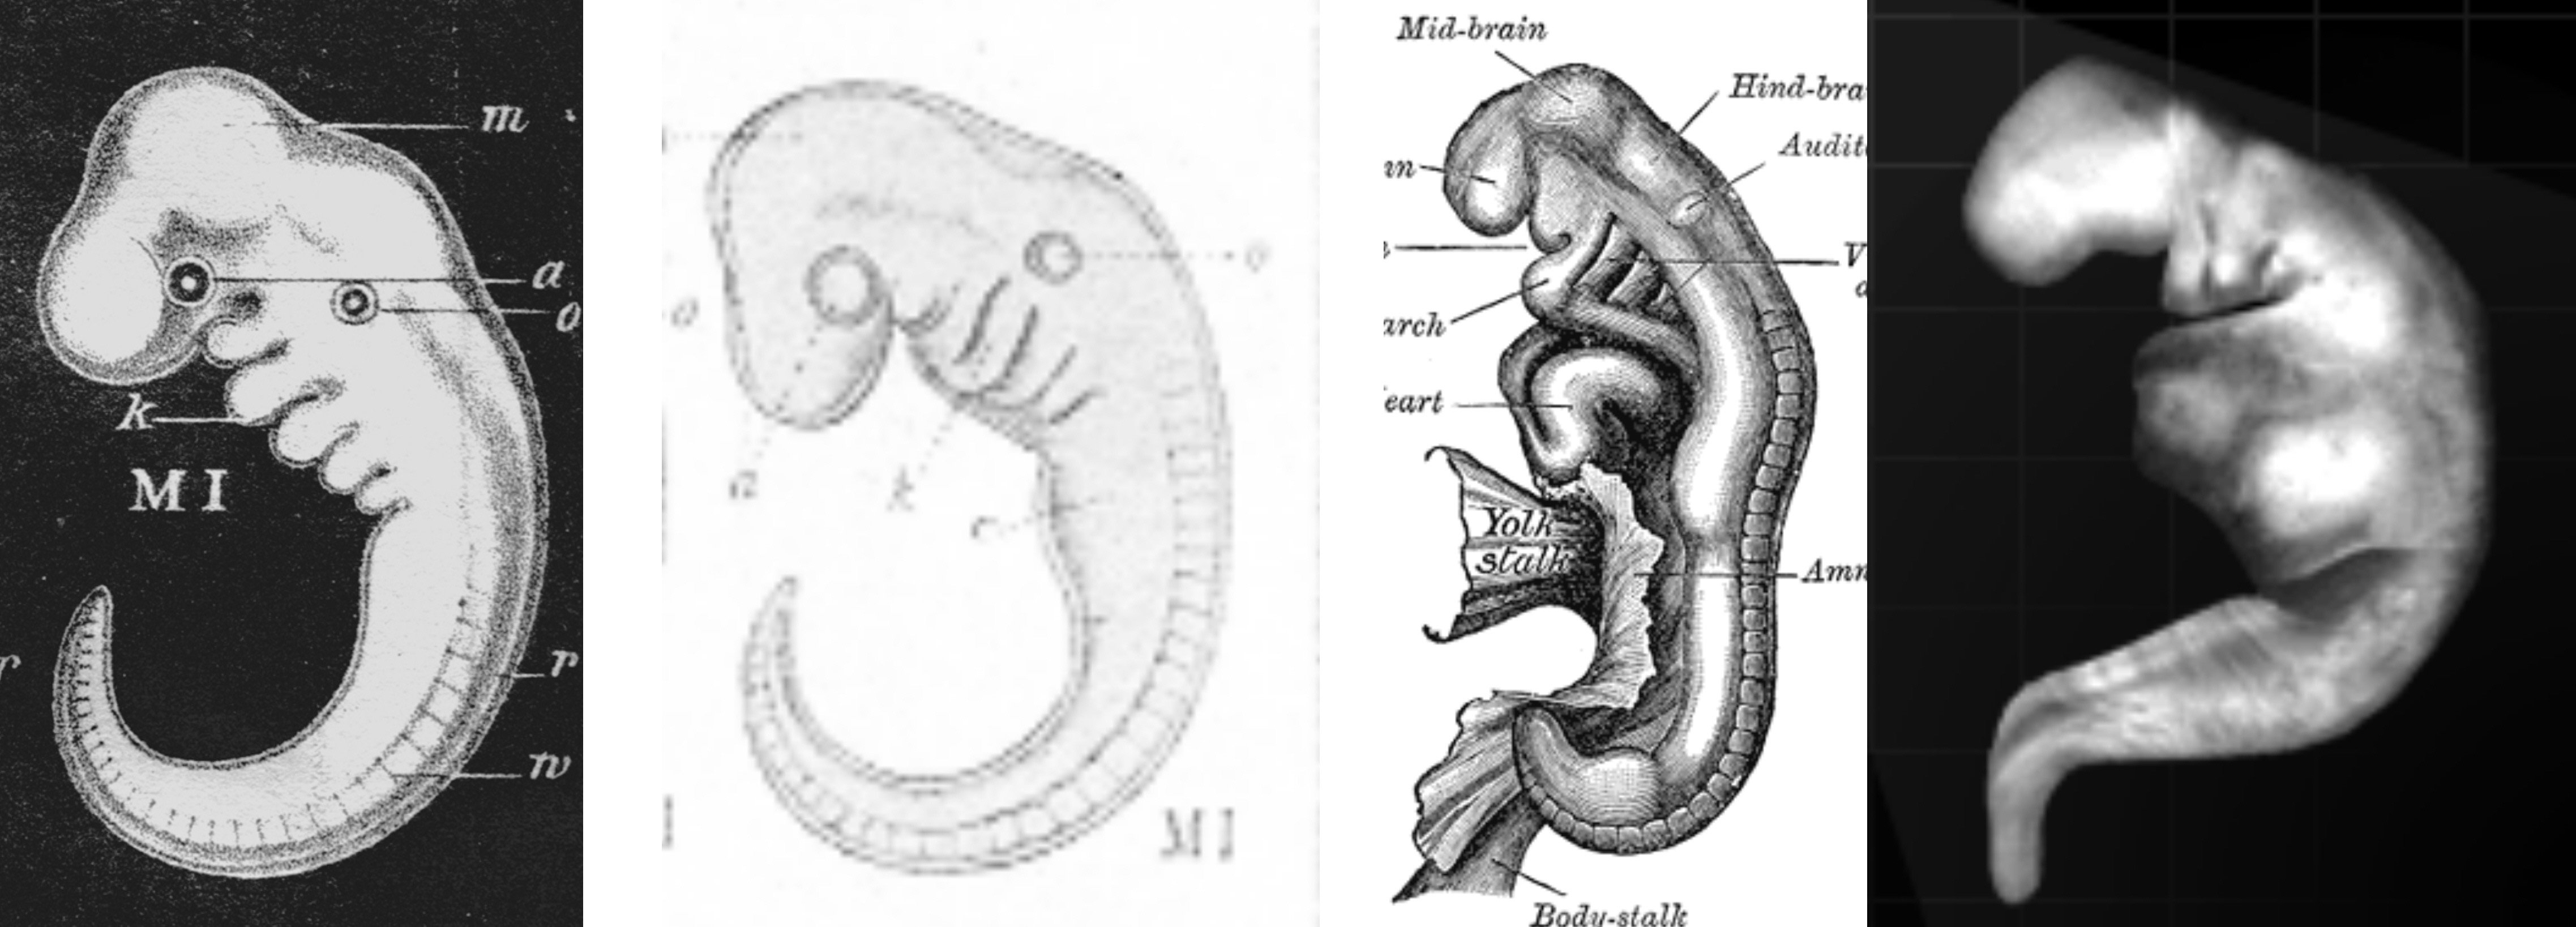 """Creationist foists """"fraudulent"""" embryo picture on his readers ..."""